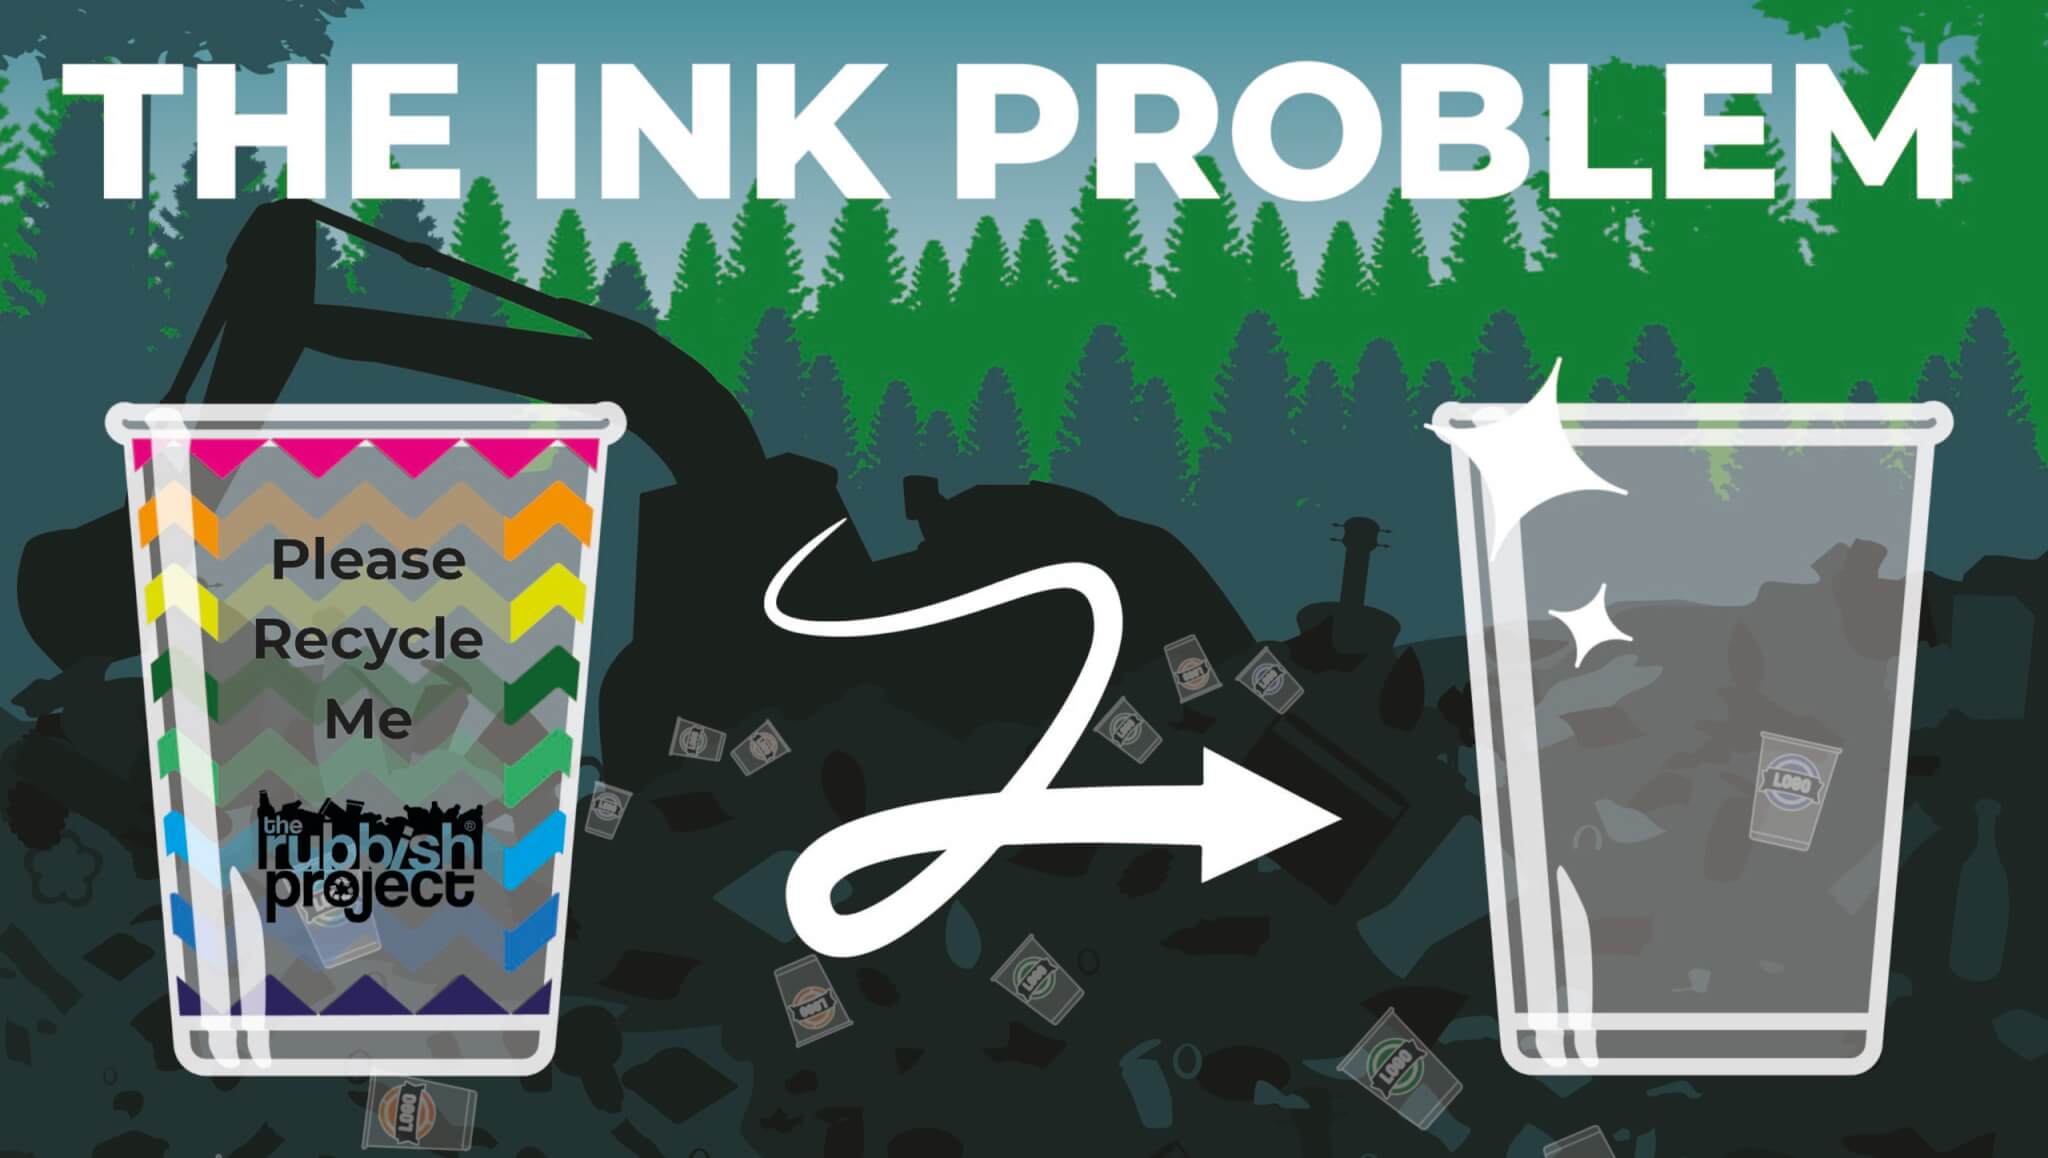 Solving the Ink Problem - The rubbish project